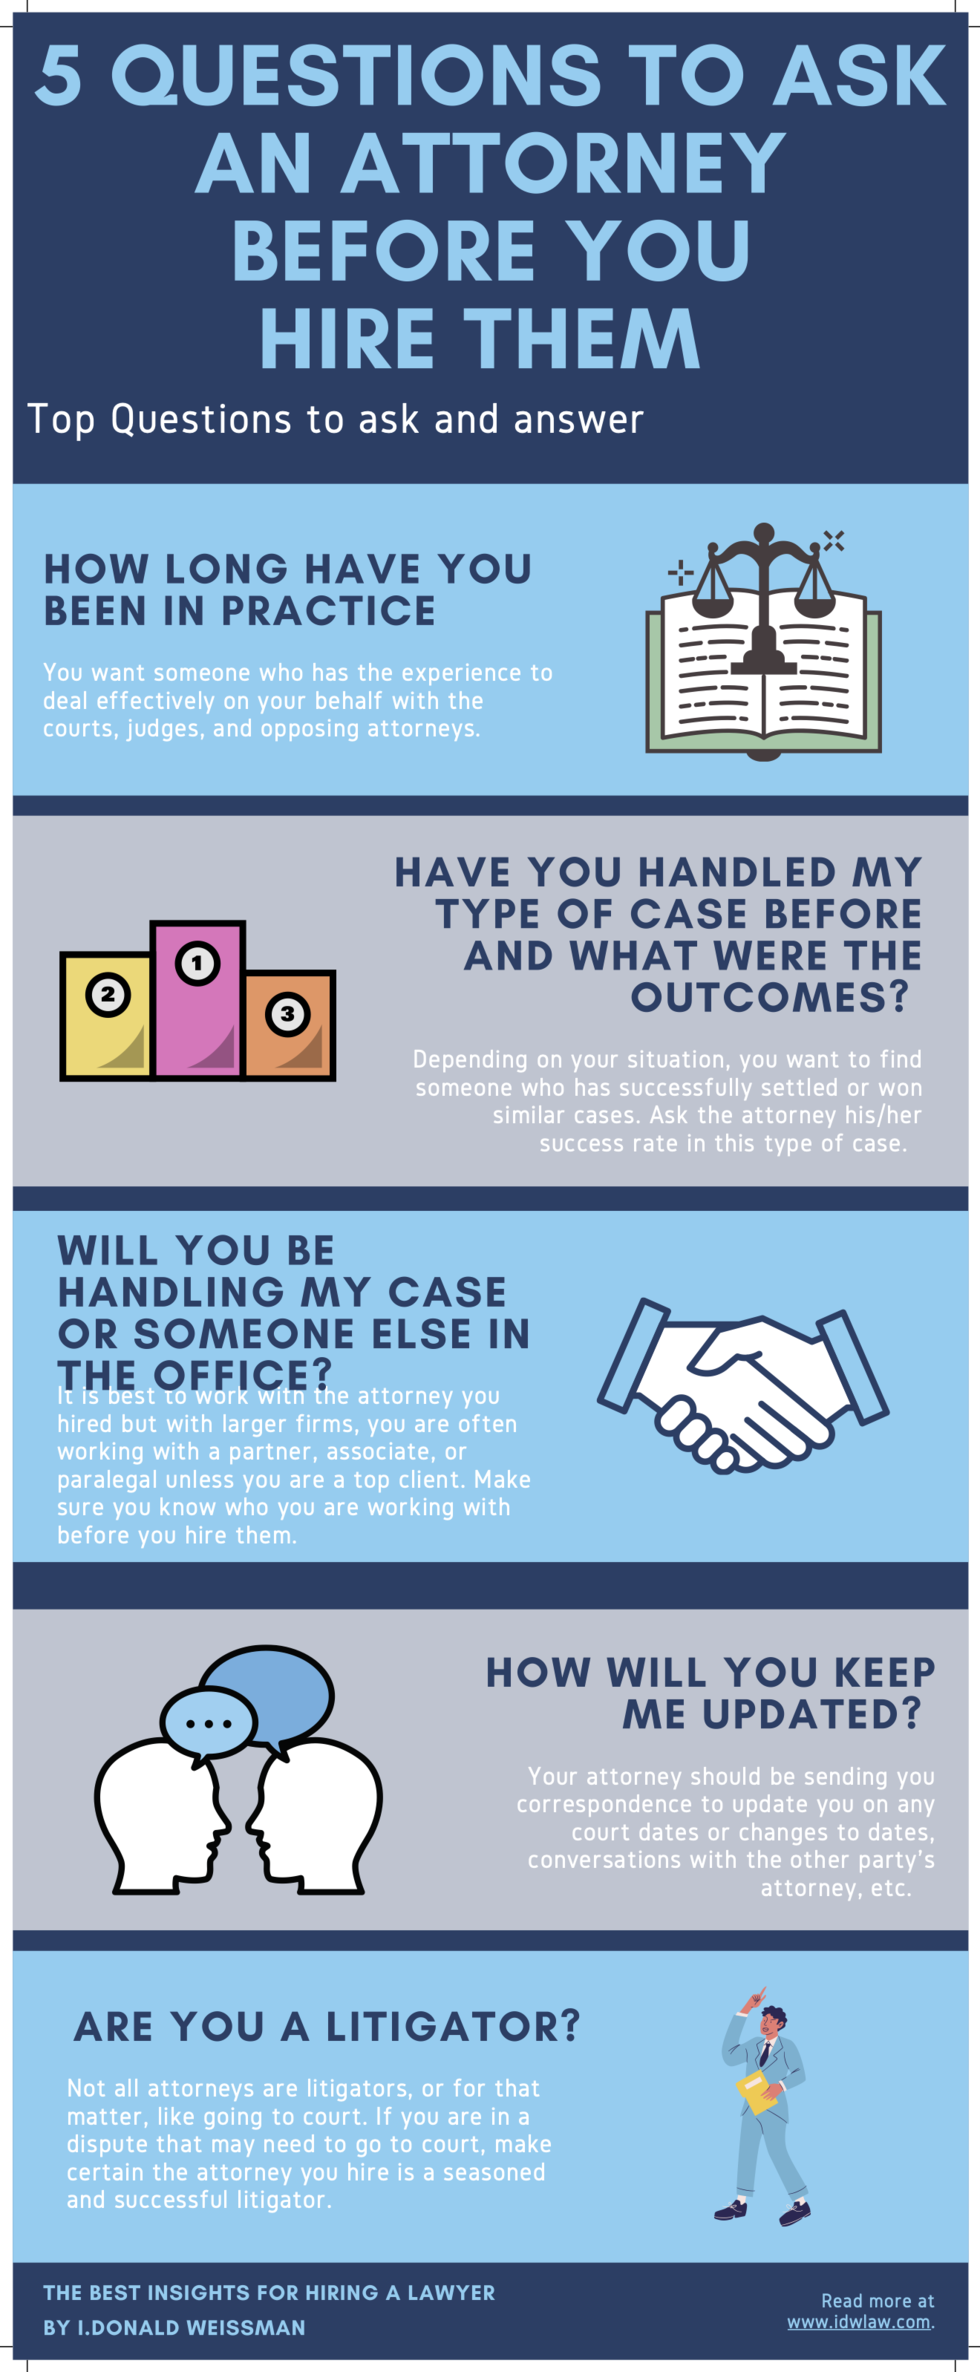 5 Questions to Ask an Attorney